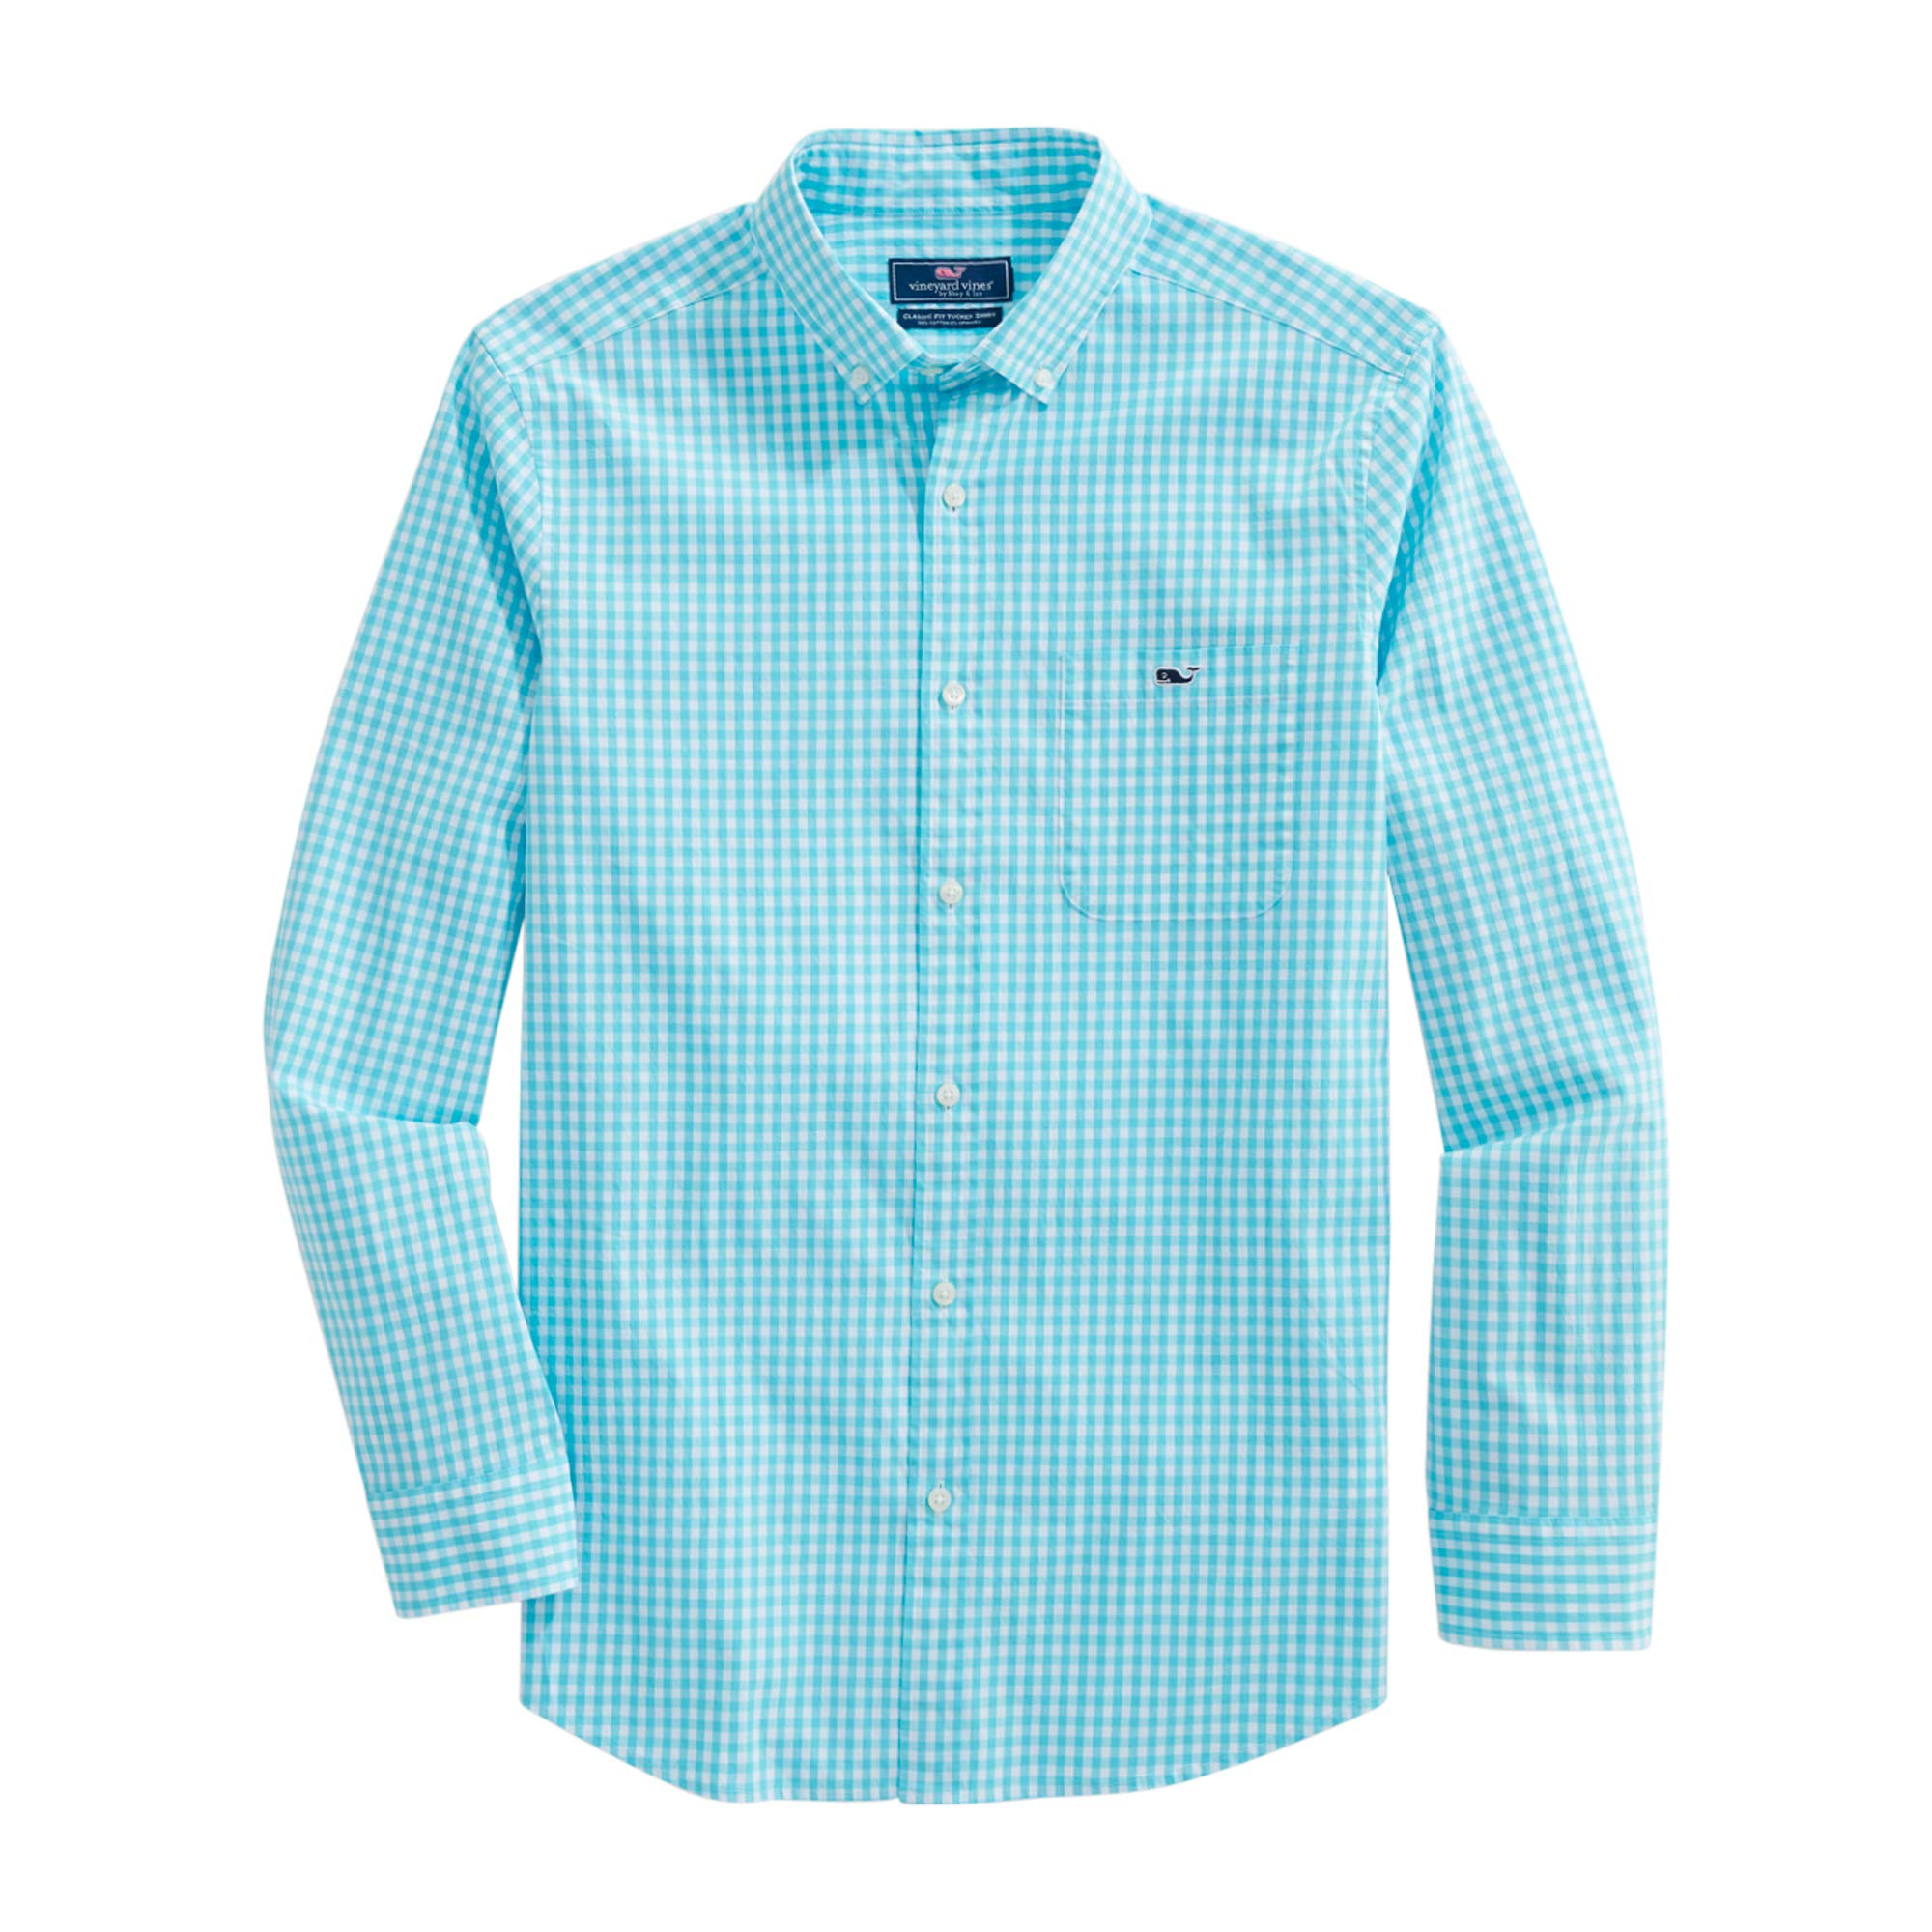 Men's Classic Fit Gingham Shirt in Stretch Cotton